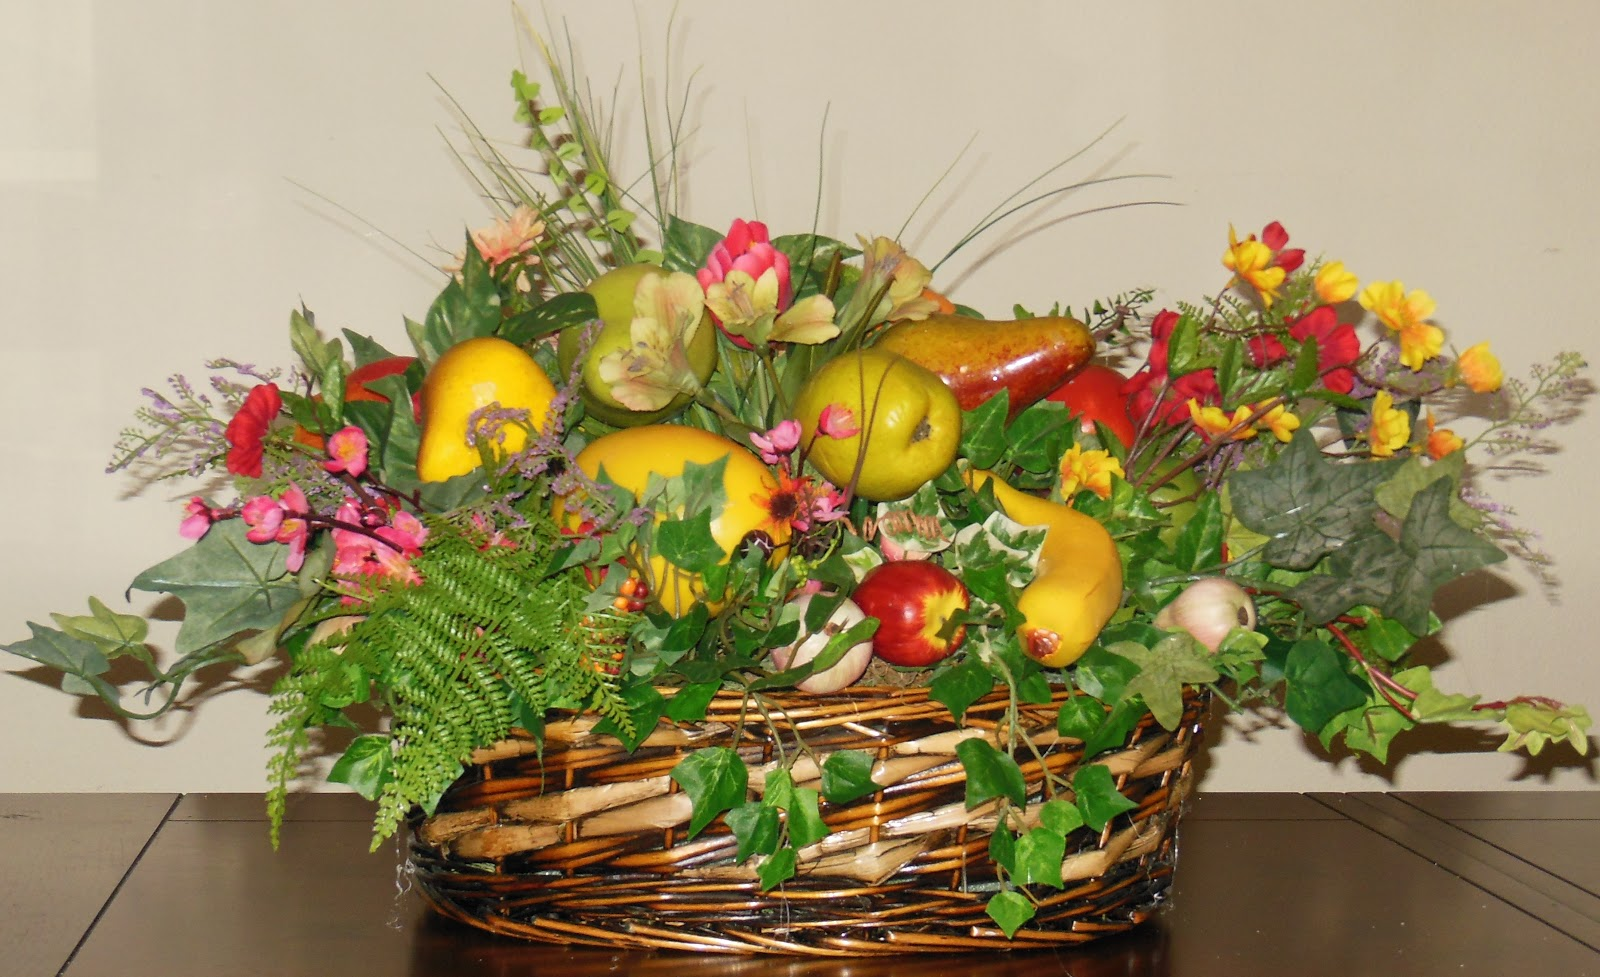 Ana silk flowers how to use fruit in artificial floral Floral arrangements with fruit